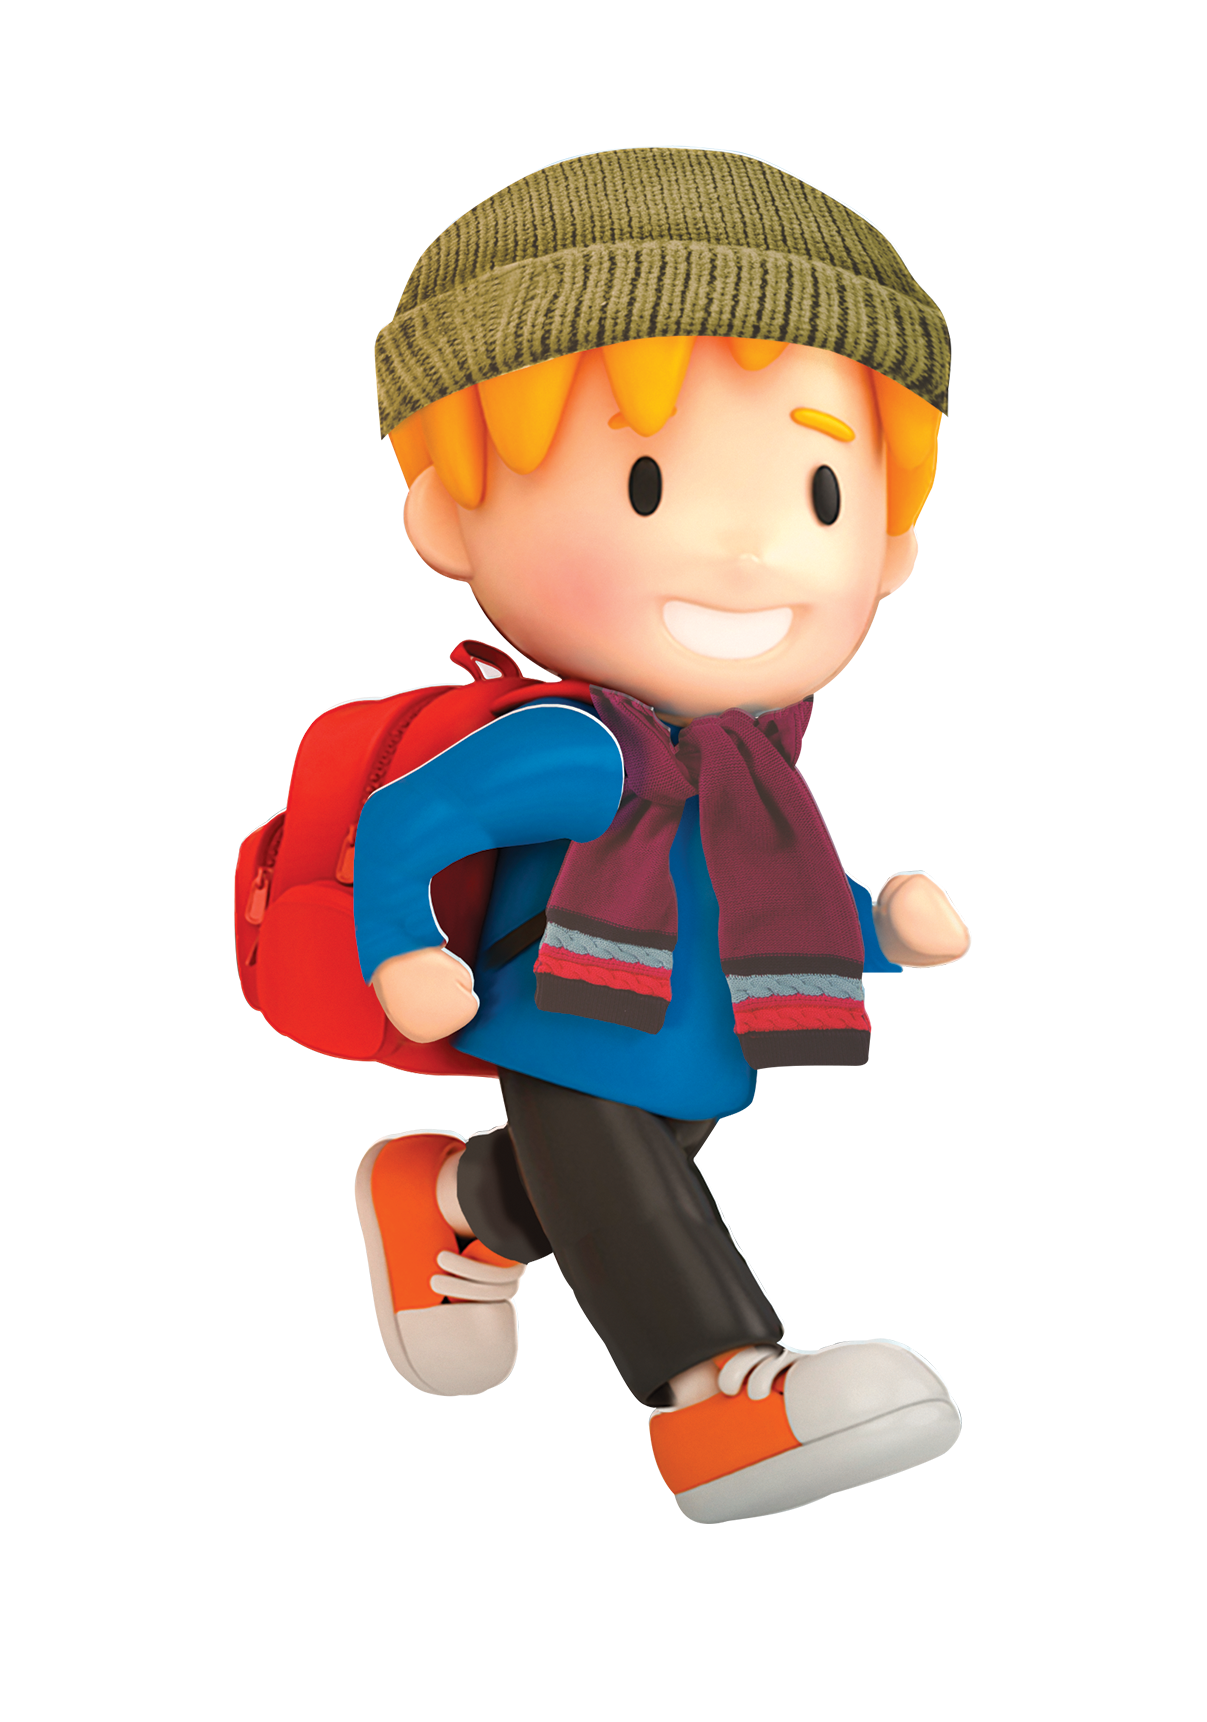 Clipart student walking, Clipart student walking Transparent.